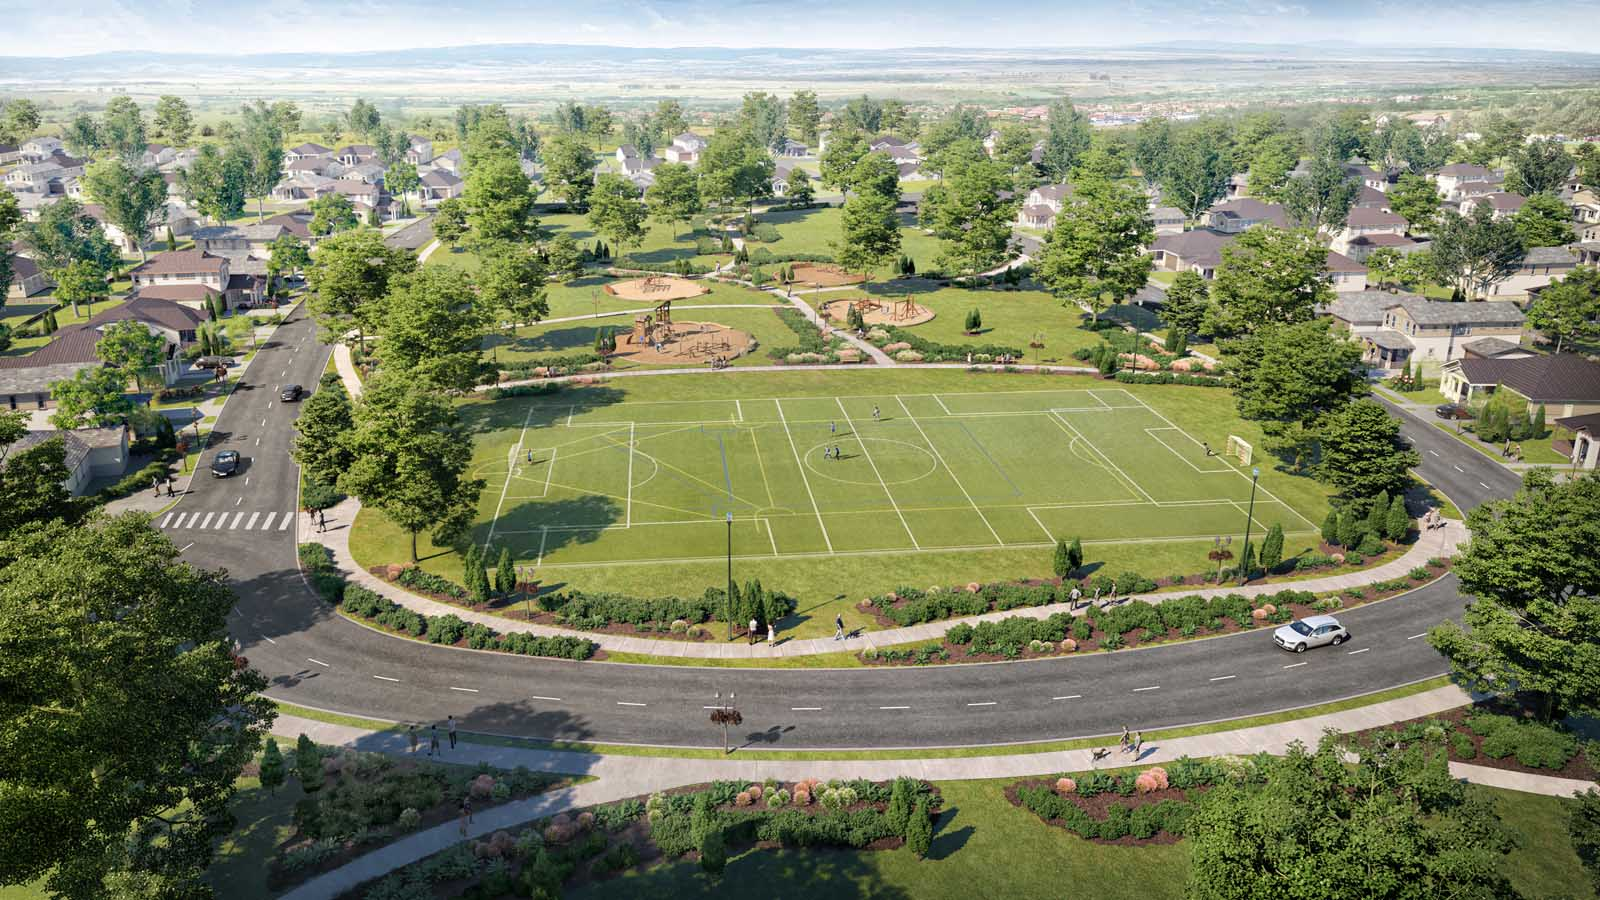 Rendering of soccer field | Winding Creek | New Homes in Roseville, CA | Anthem United